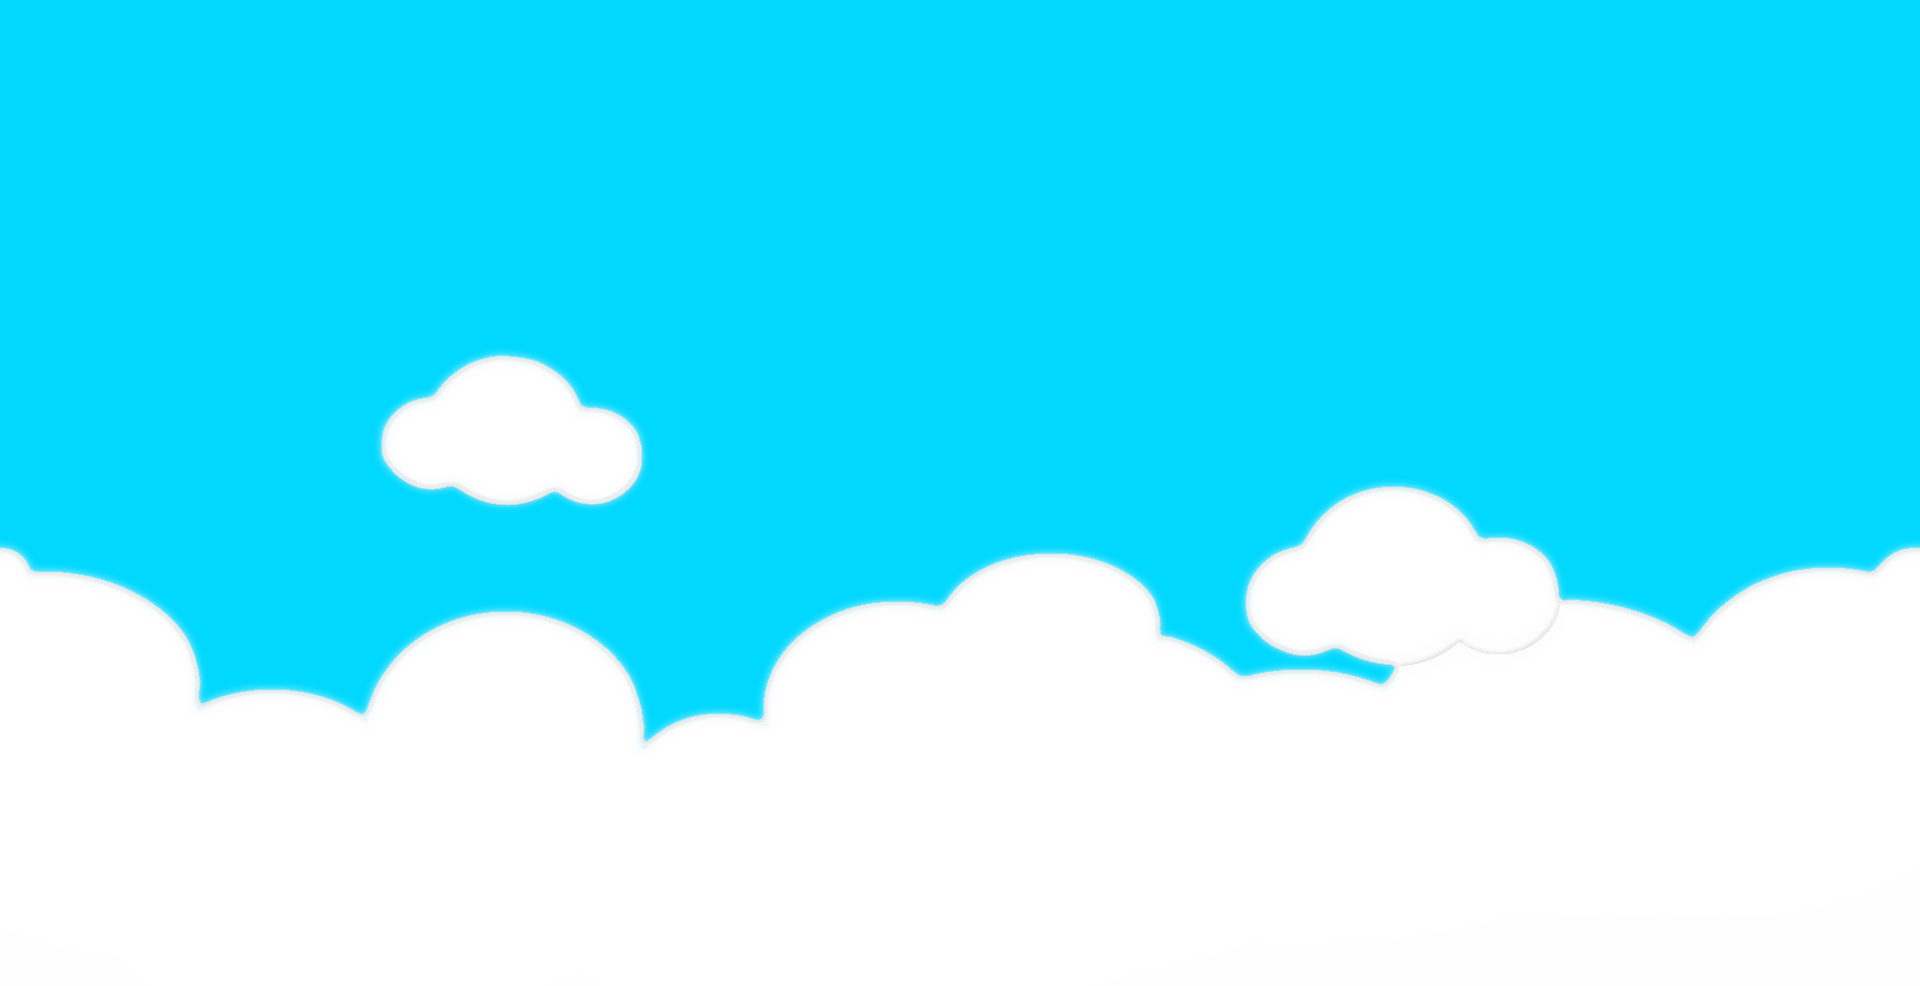 Cartoony Cloud Images.